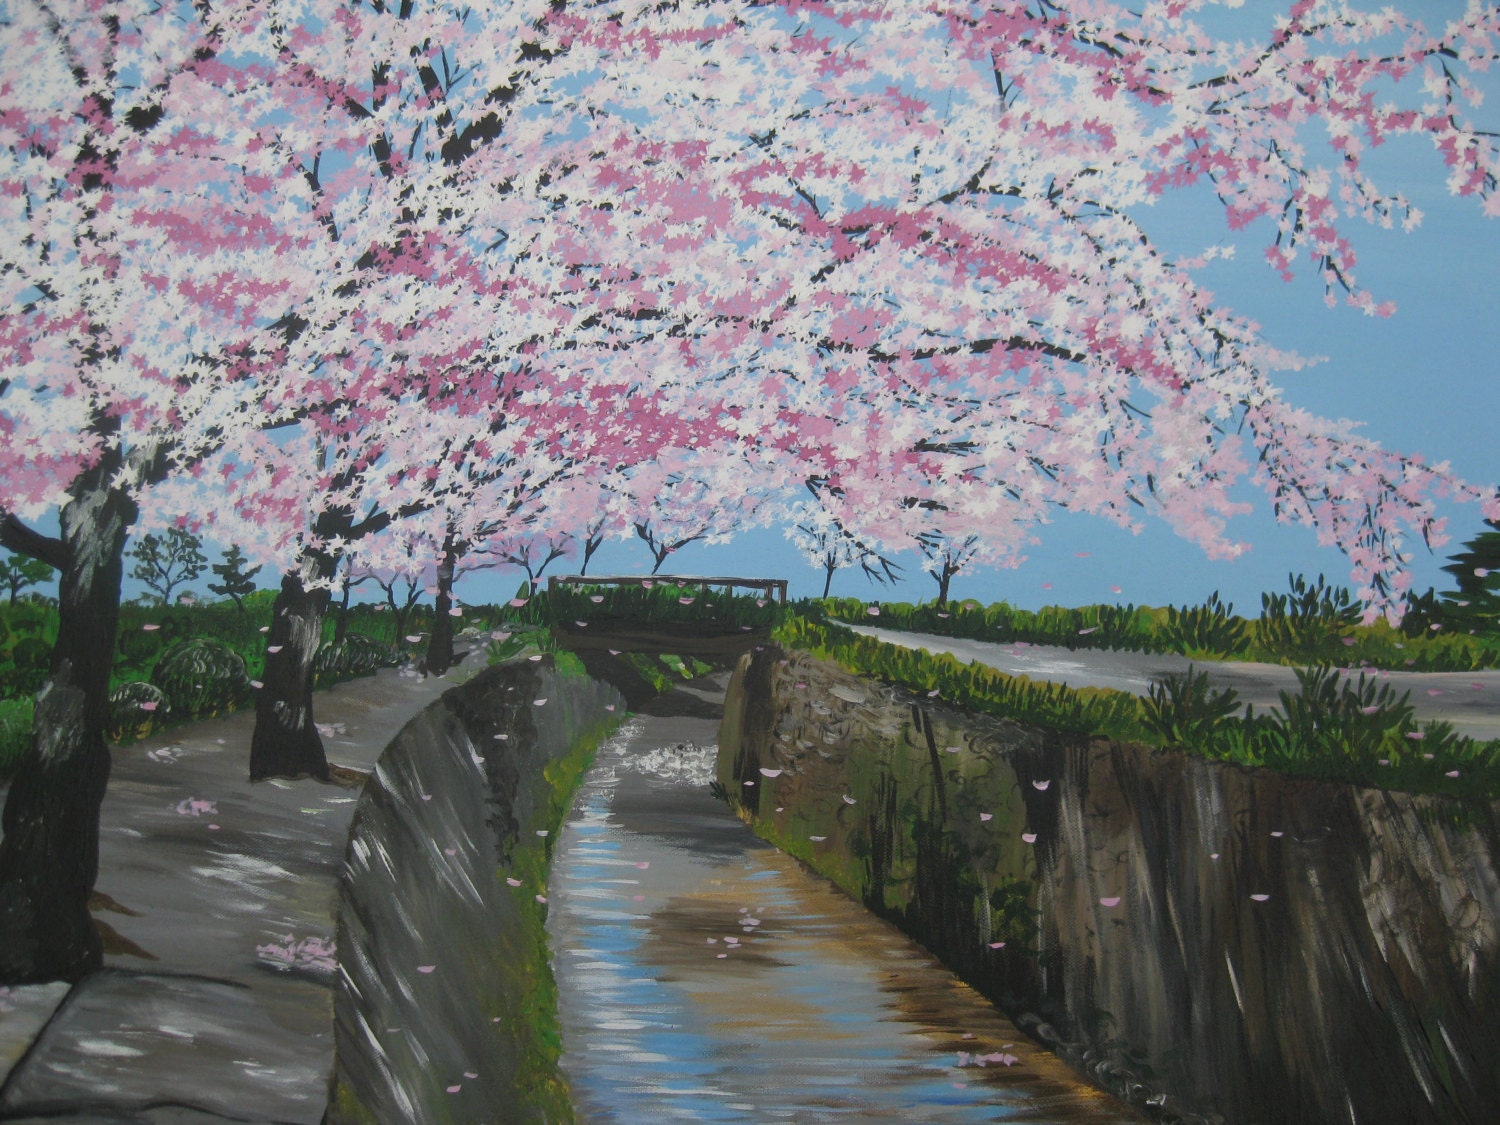 of a Cherry Blossom Painting - Japanese landscape blossoms from Japan ... Japanese Cherry Blossom Landscape Painting